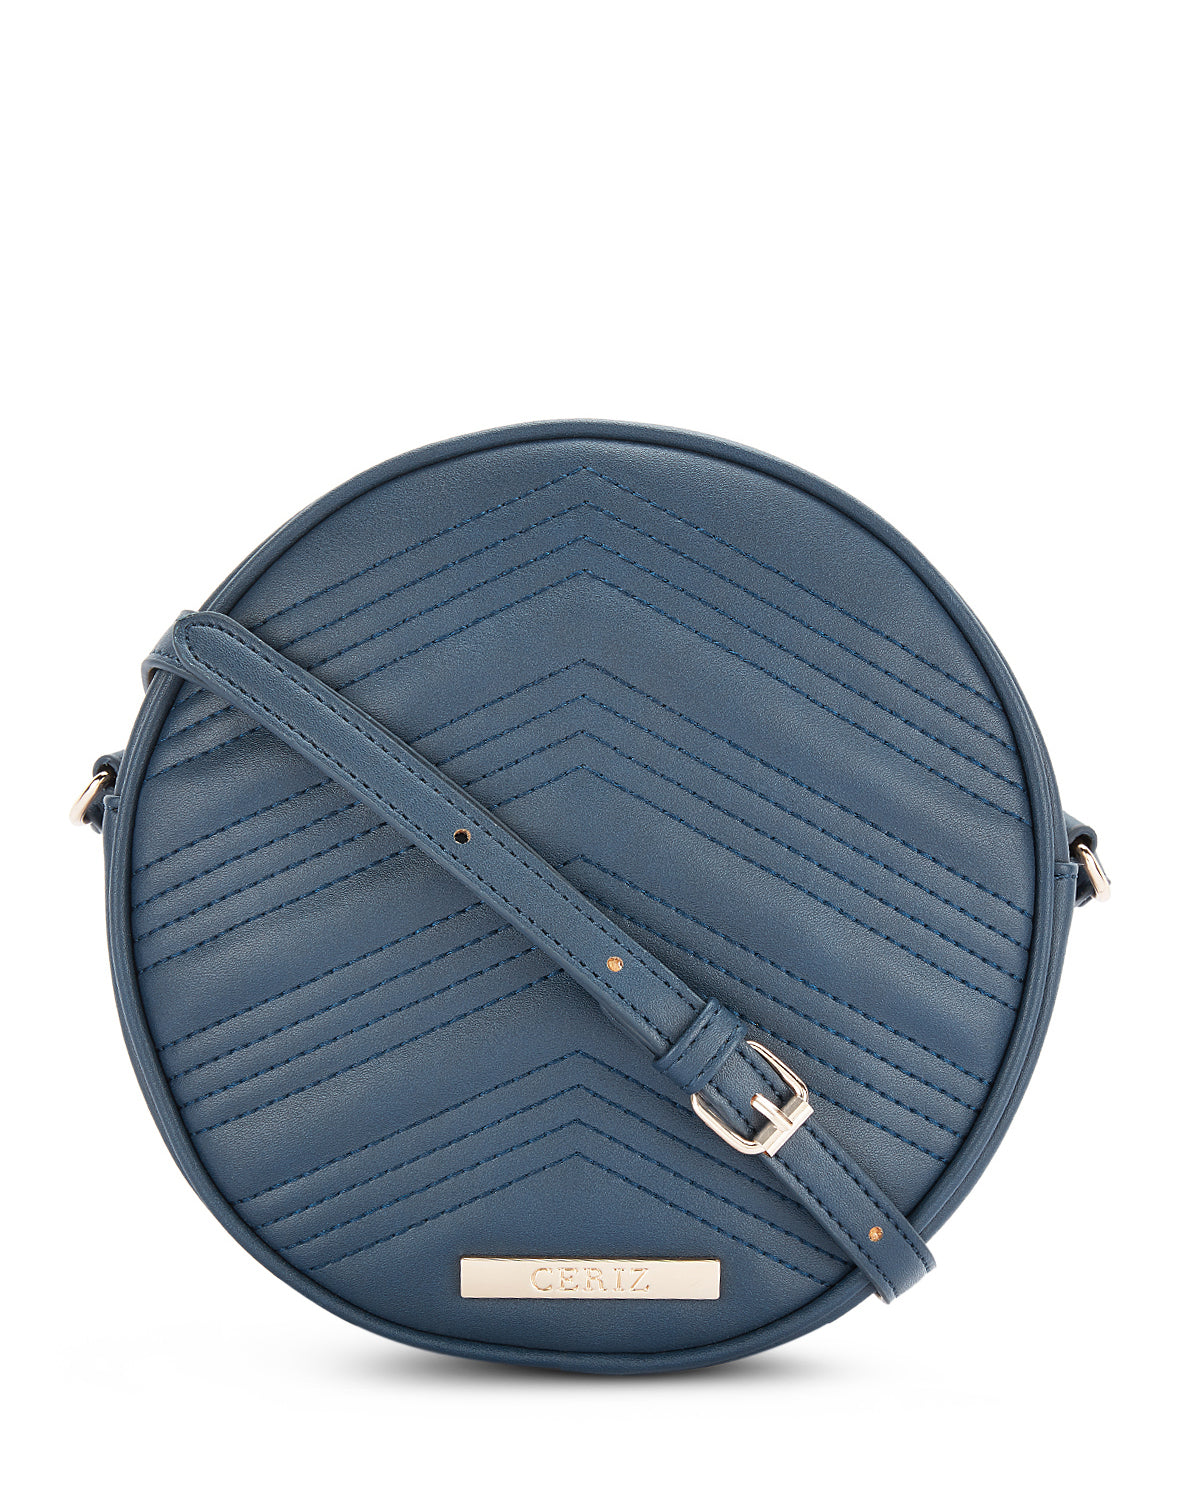 Adelle Navy Sling Bag